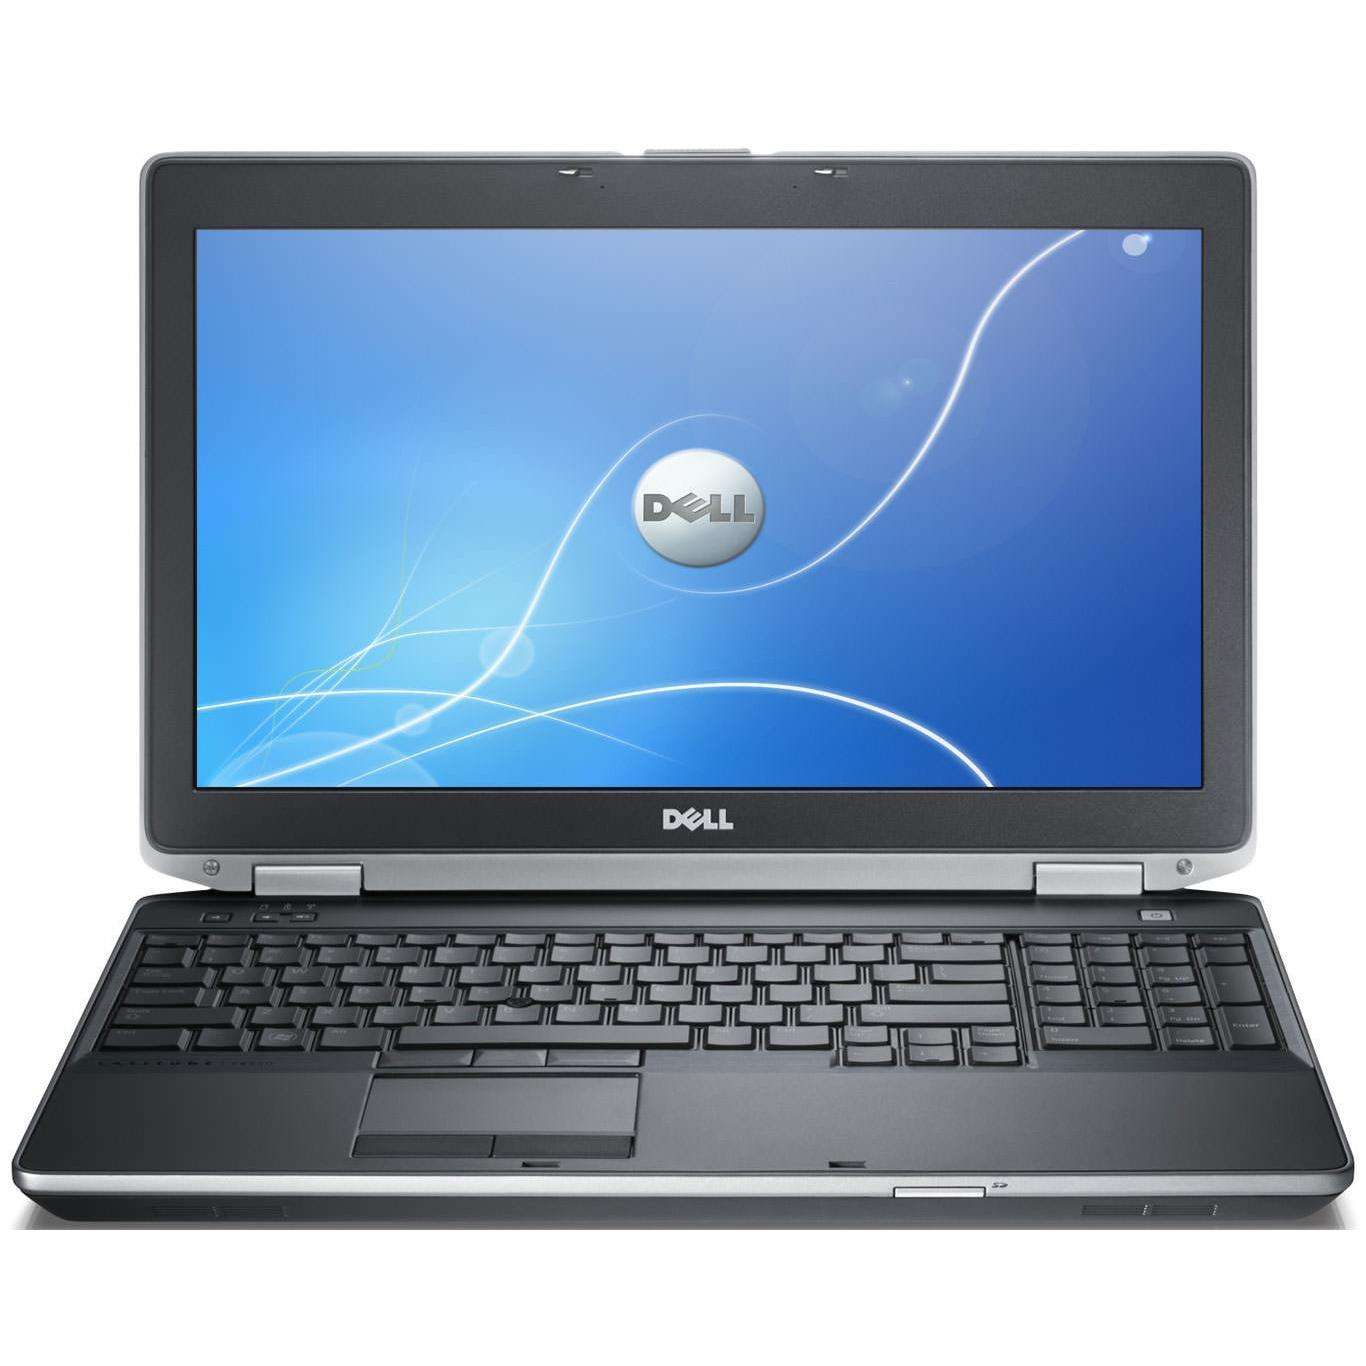 Dell Dell Latitude E6420 - Core i5 2.5 GHz - HDD 320 Go - RAM 4 Go - AZERTY